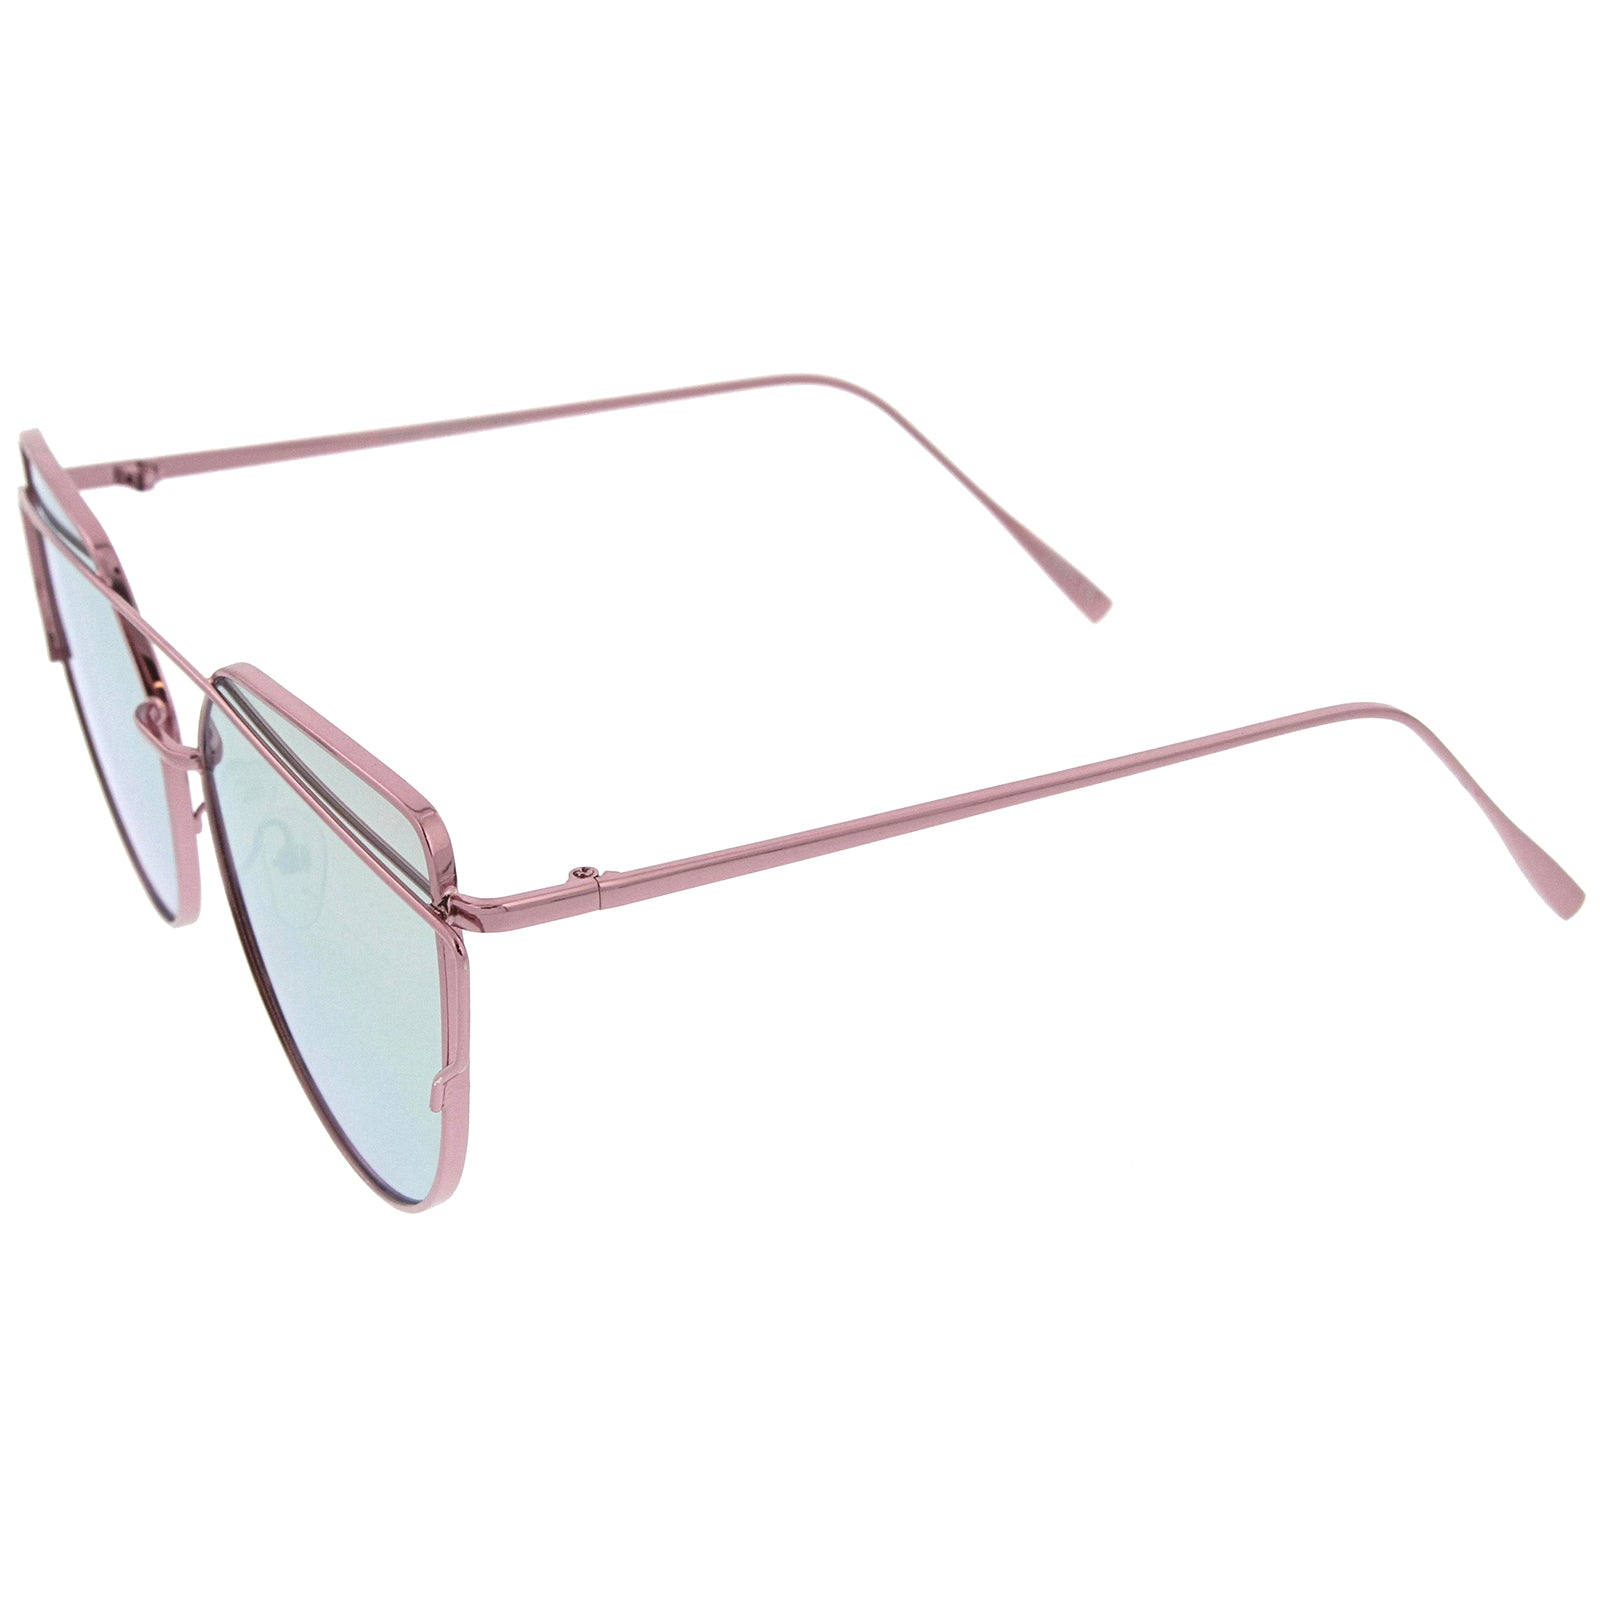 Oversize Metal Frame Thin Temple Color Mirror Flat Lens Aviator Sunglasses 62mm - sunglass.la - 3